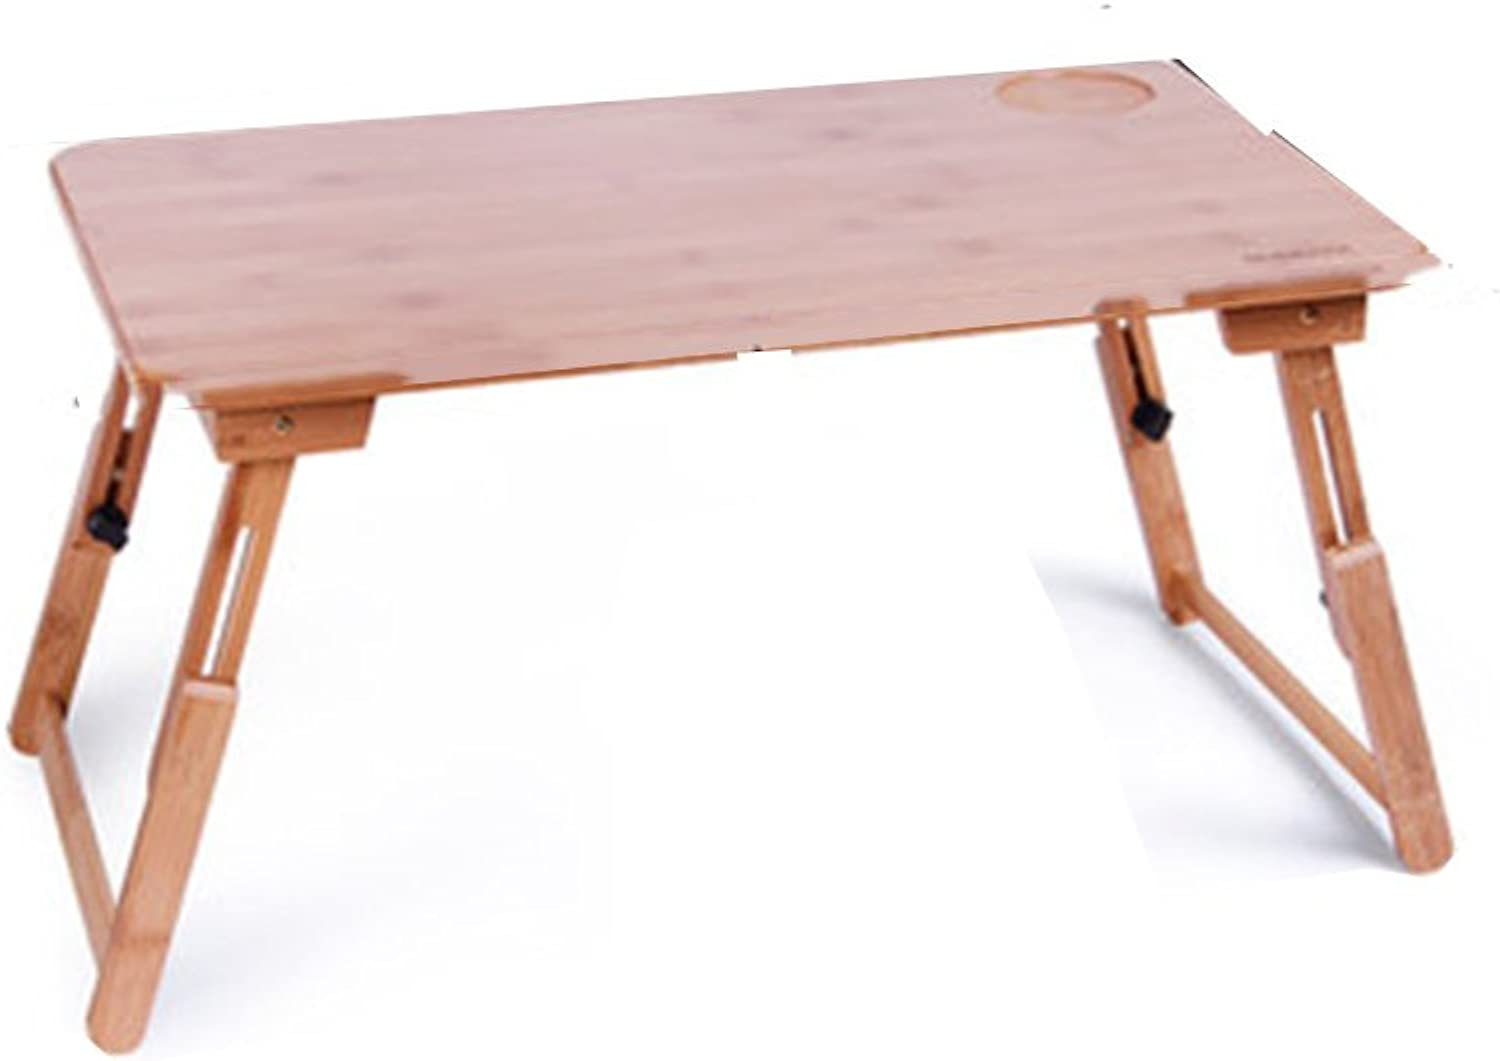 XUERUI Folding Tables Folding Computer Table Bed Can Be Used to Learn to Write Bamboo Material Wood color Two Types Can Be Selected (Size   L50cmW30cmH27cm)